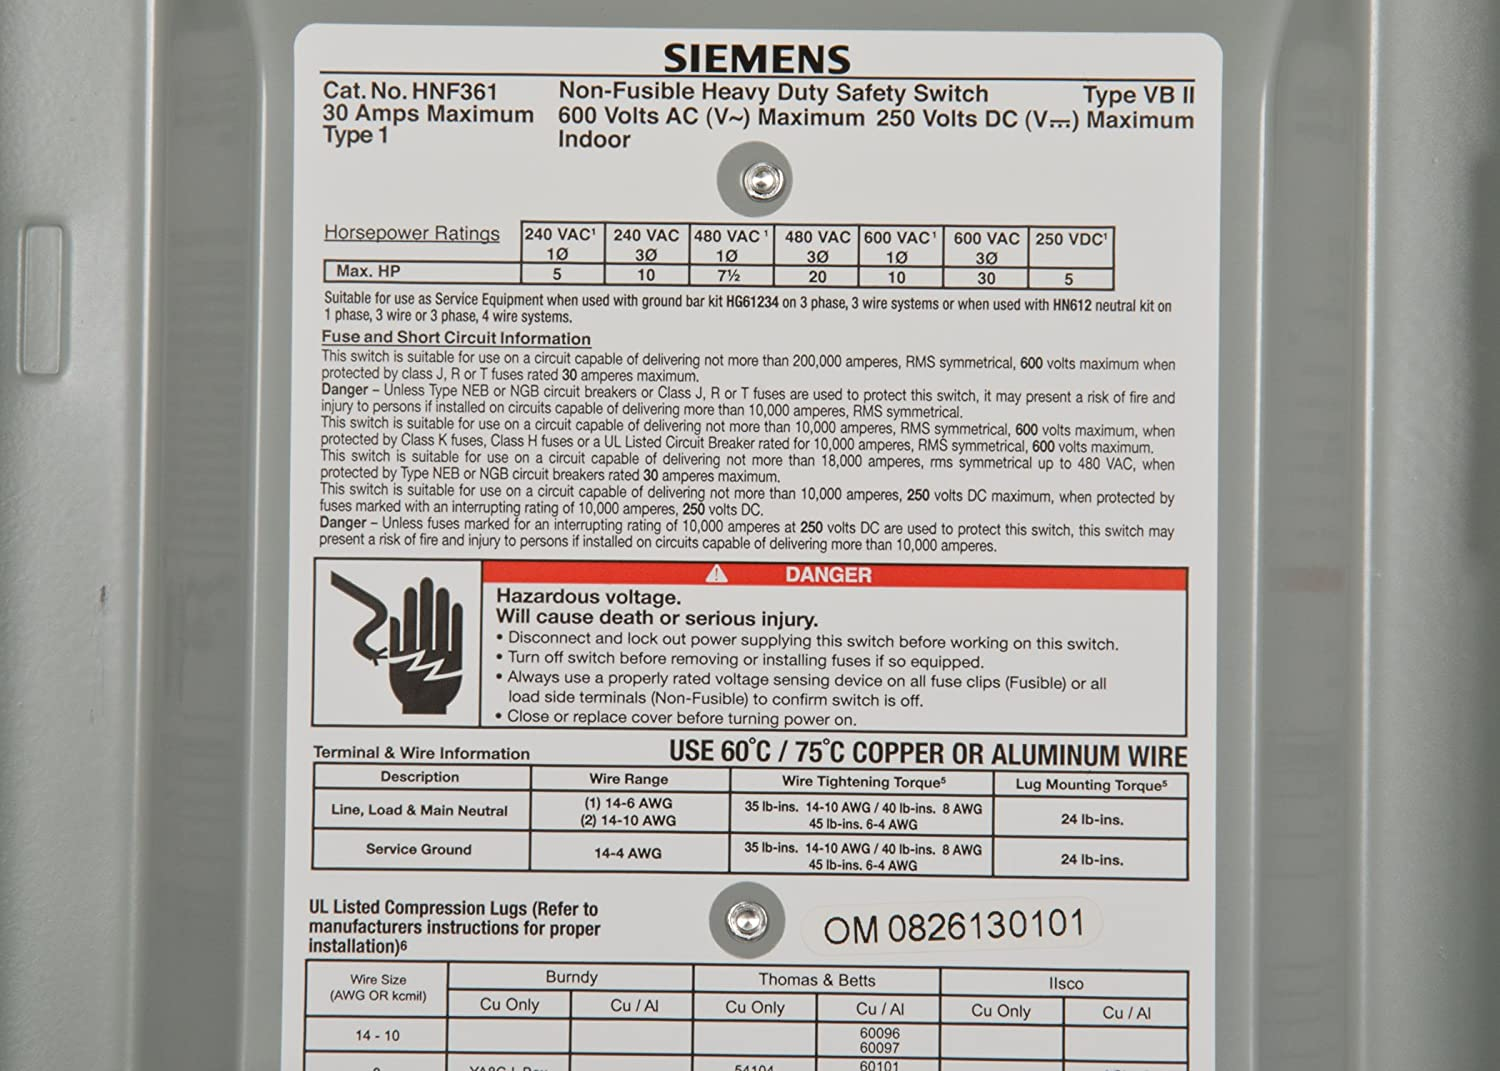 Siemens HNF361 30-Amp 3 Pole 600-volt 3 Wire Non-Fused Heavy Duty Safety Switches - -